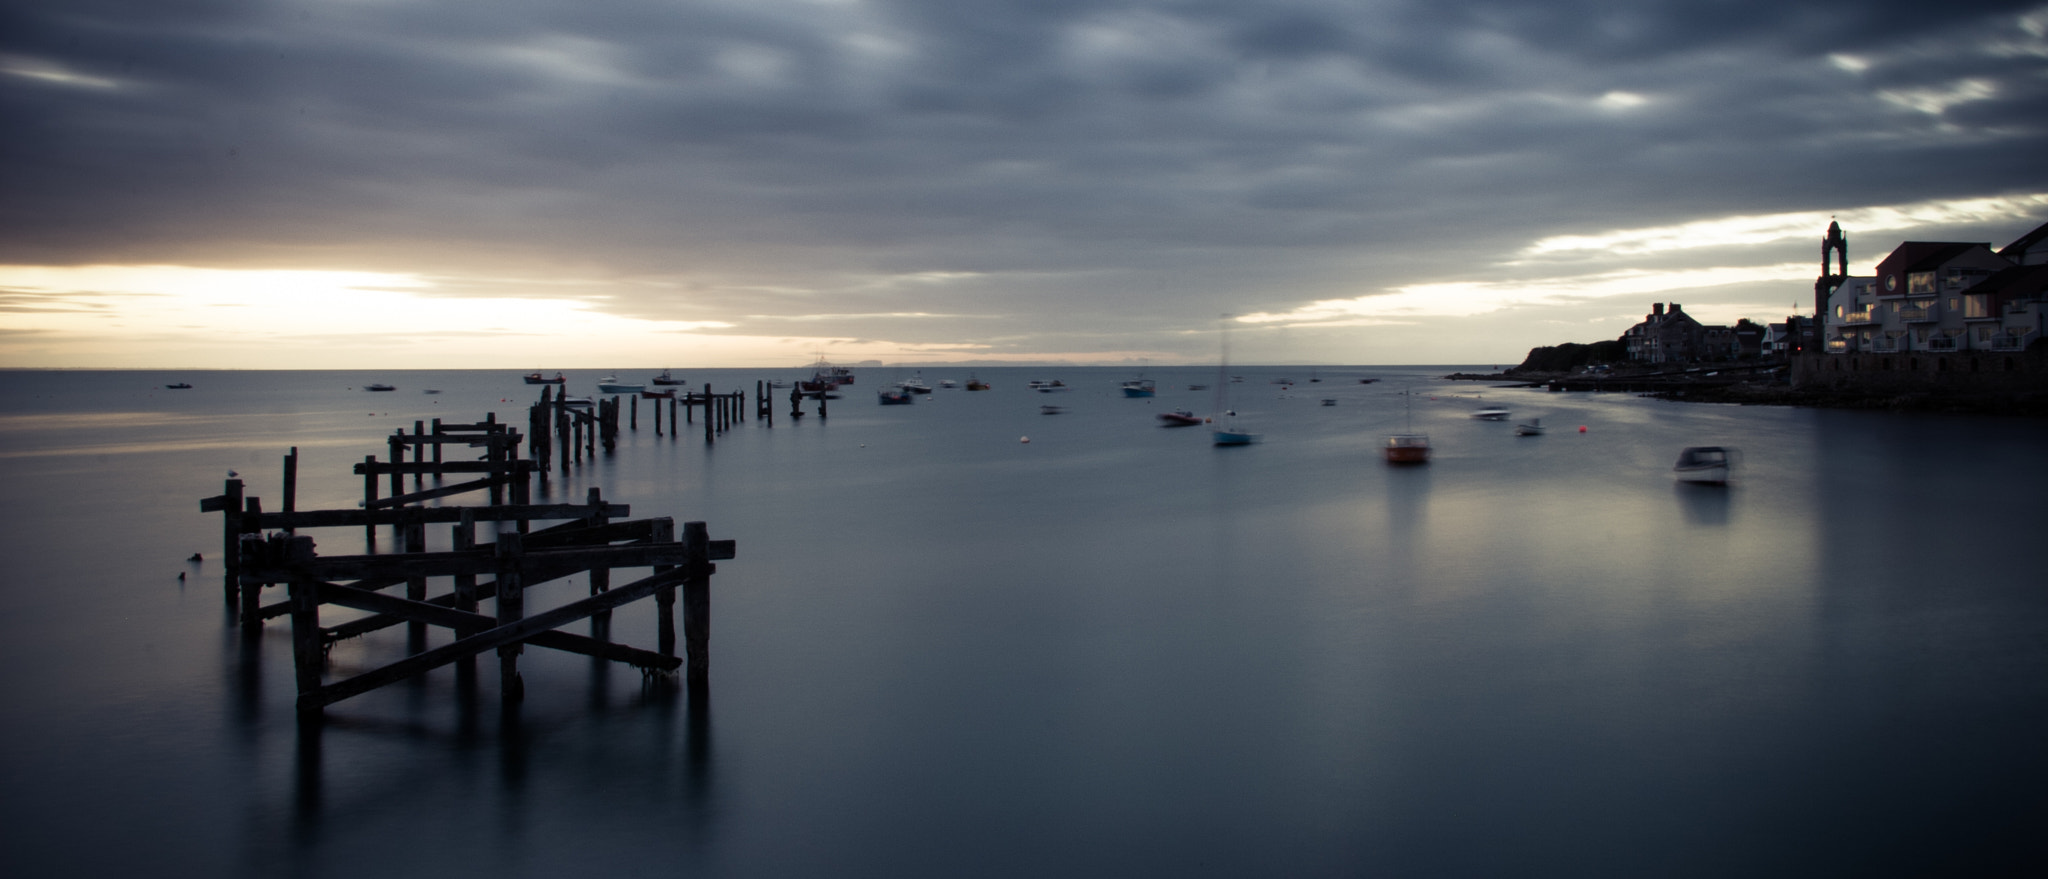 Photograph Morning in Swanage by Mitt Nathwani on 500px